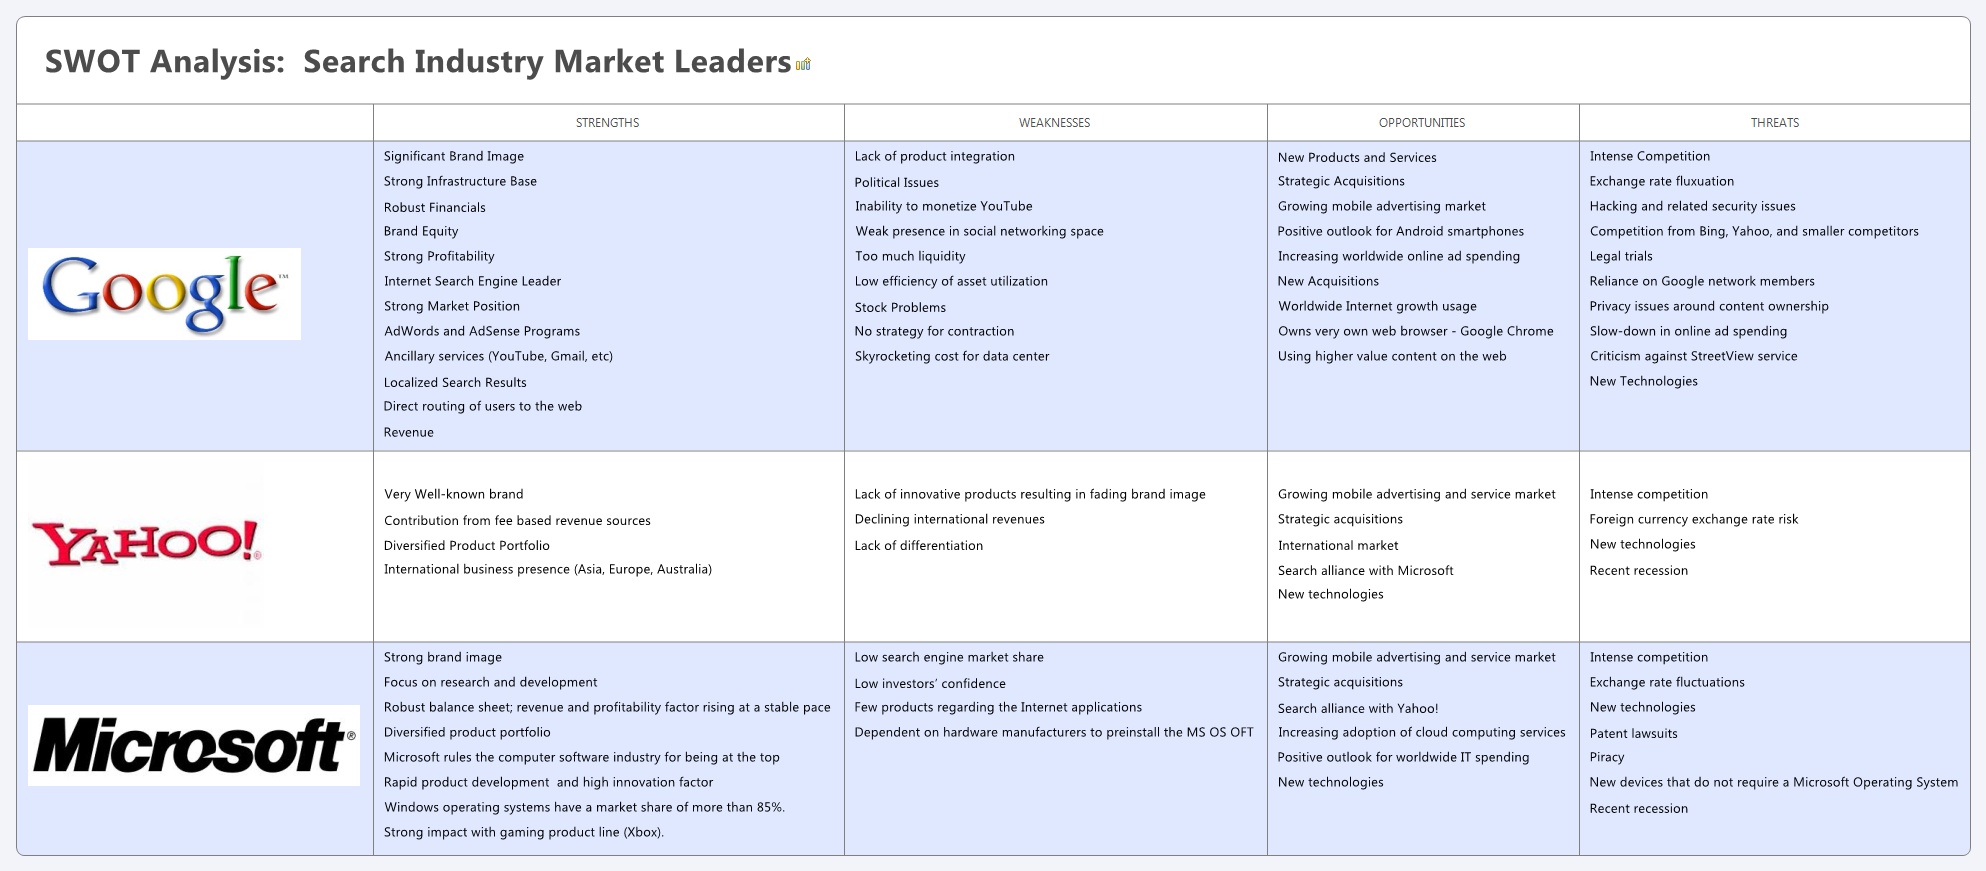 SWOT Analysis of Search Industry Companies | Hugh Fox III